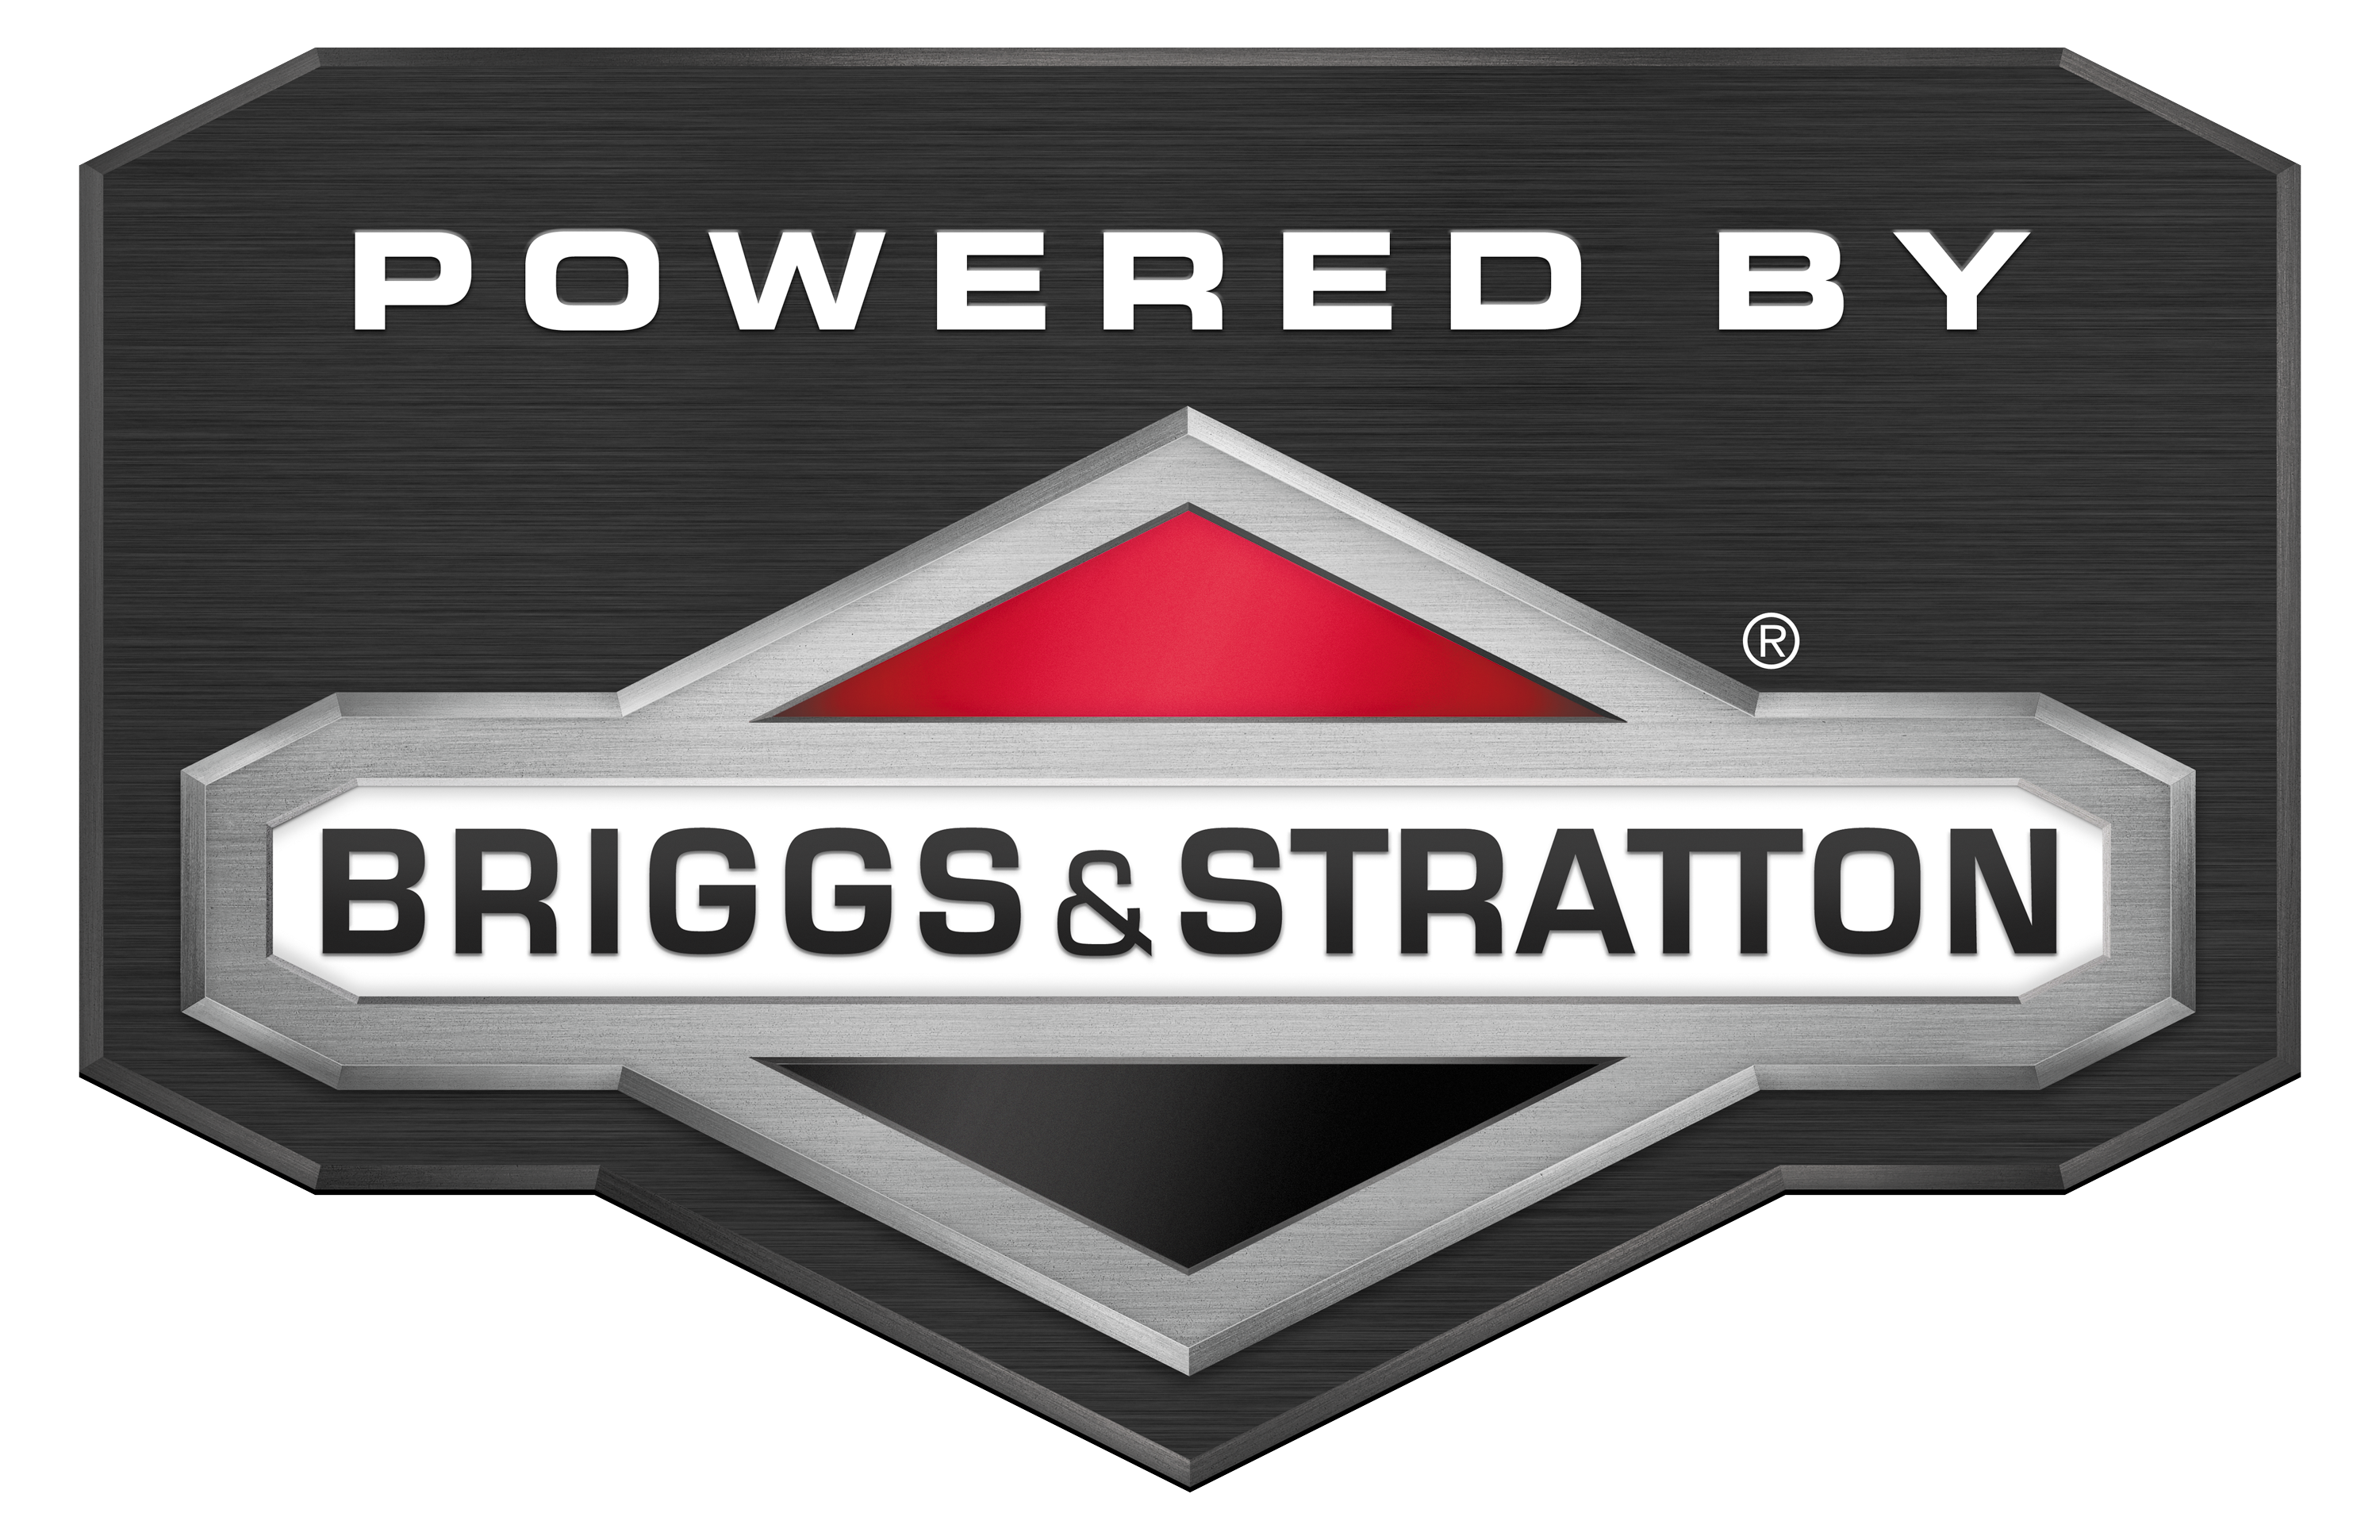 Png File. Download - Briggs Stratton, Transparent background PNG HD thumbnail